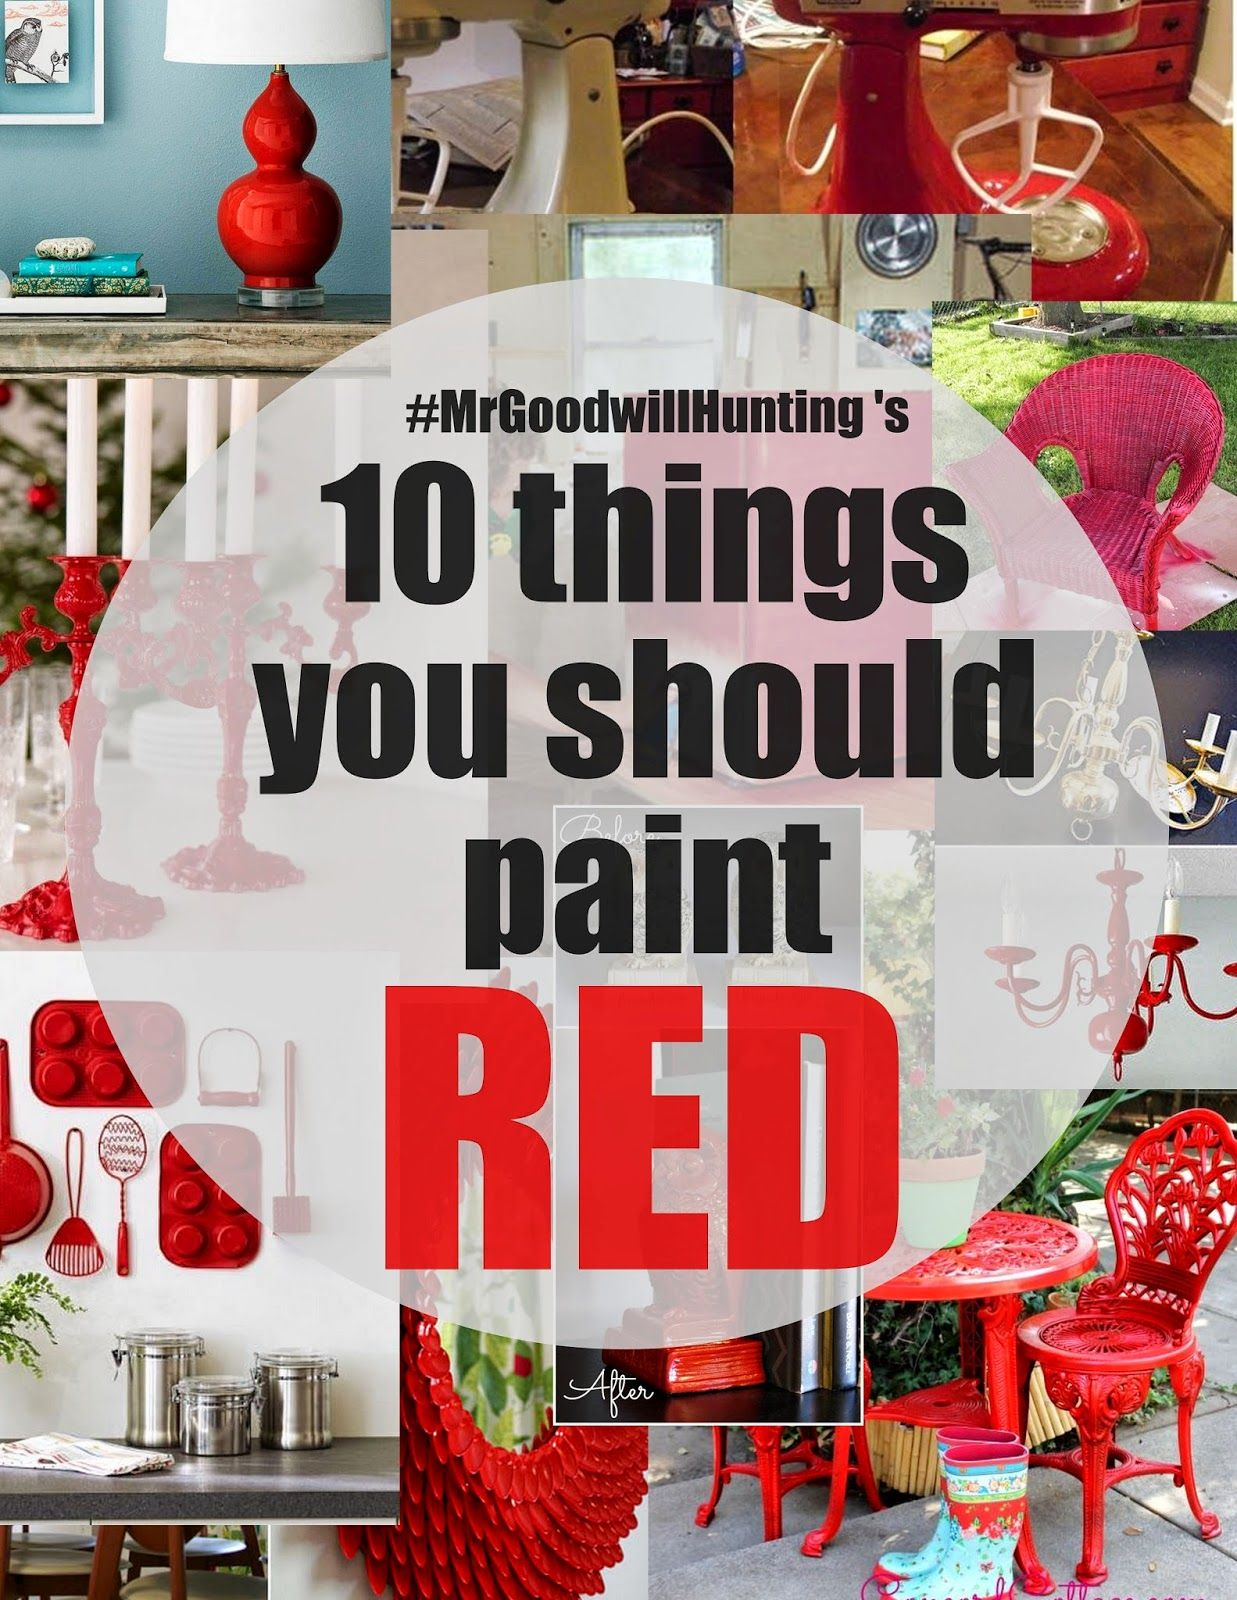 10 things you should PAINT RED! Home crafts, Decor, Diy